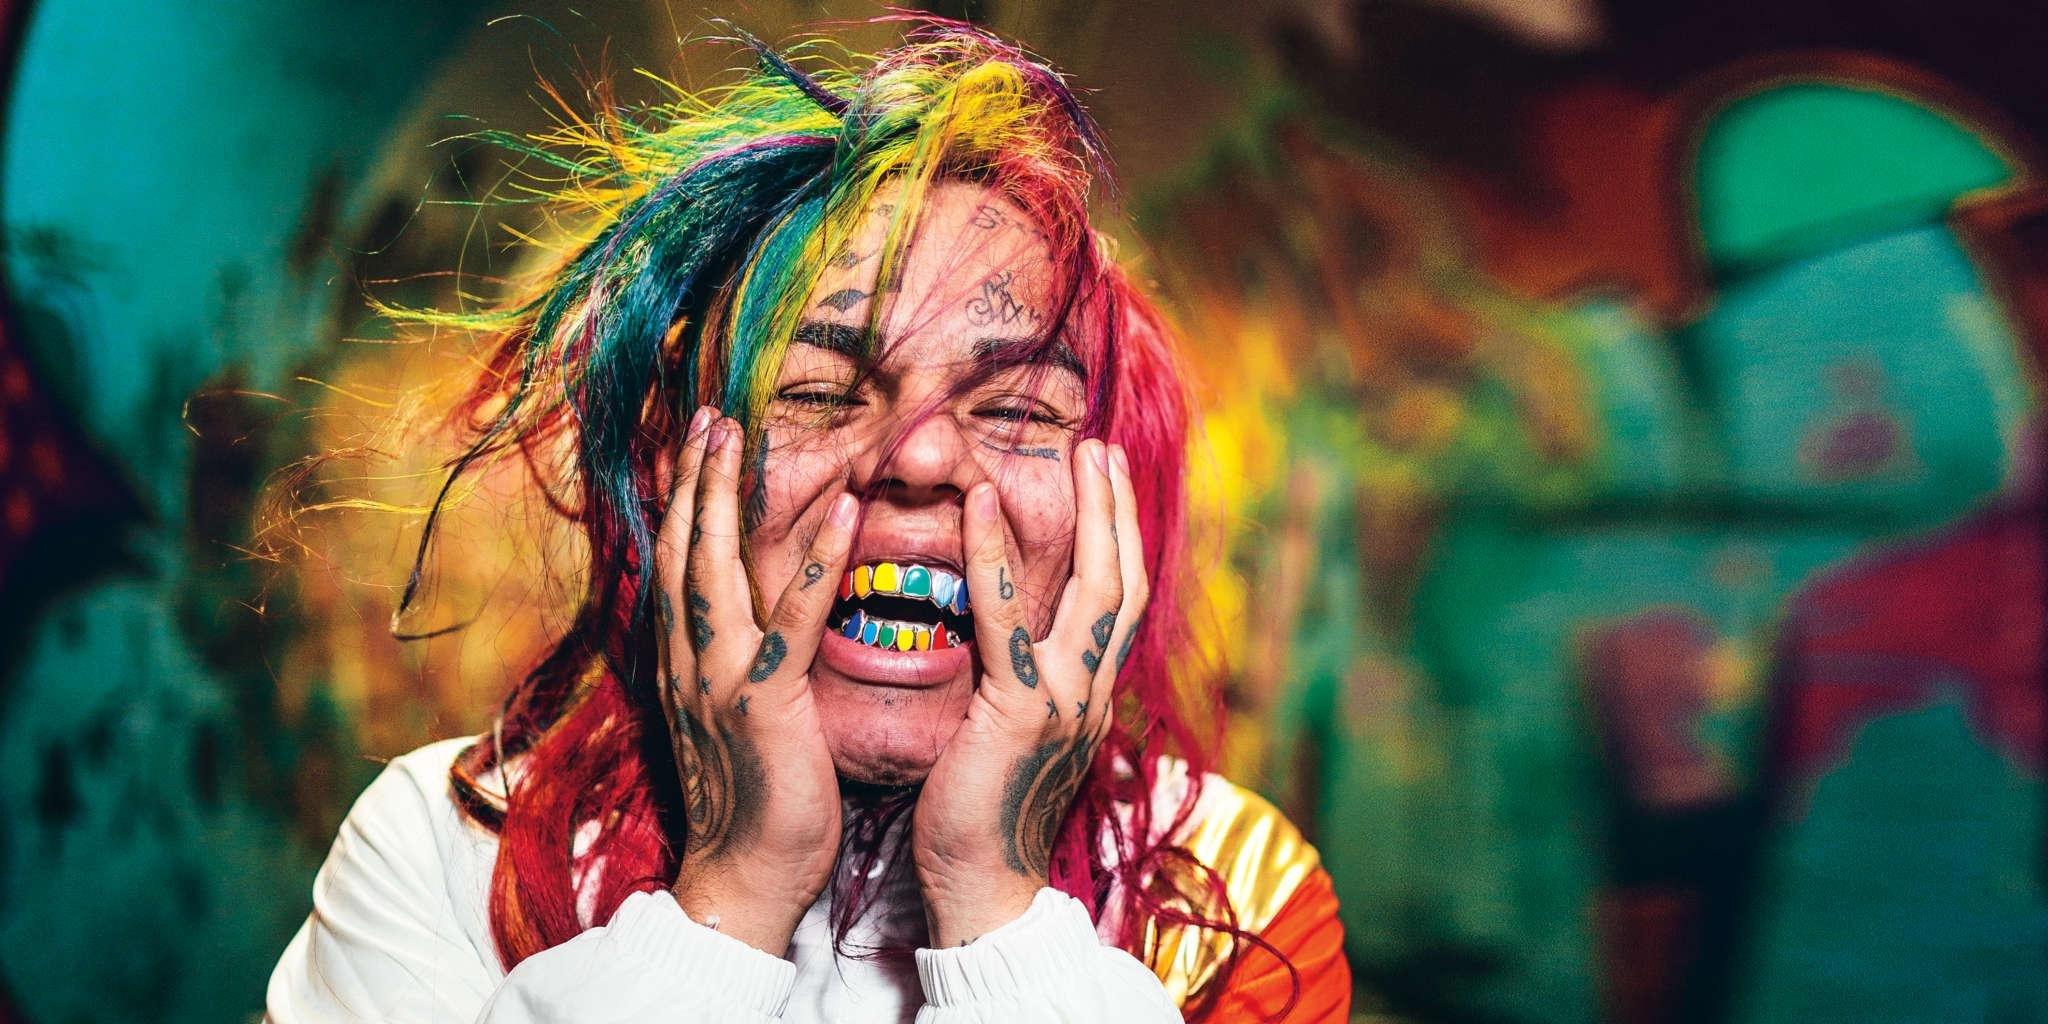 Tekashi 6ix9ine Is Ready To Drop New Music Right After Getting Released From Prison, His Lawyer Reveals!